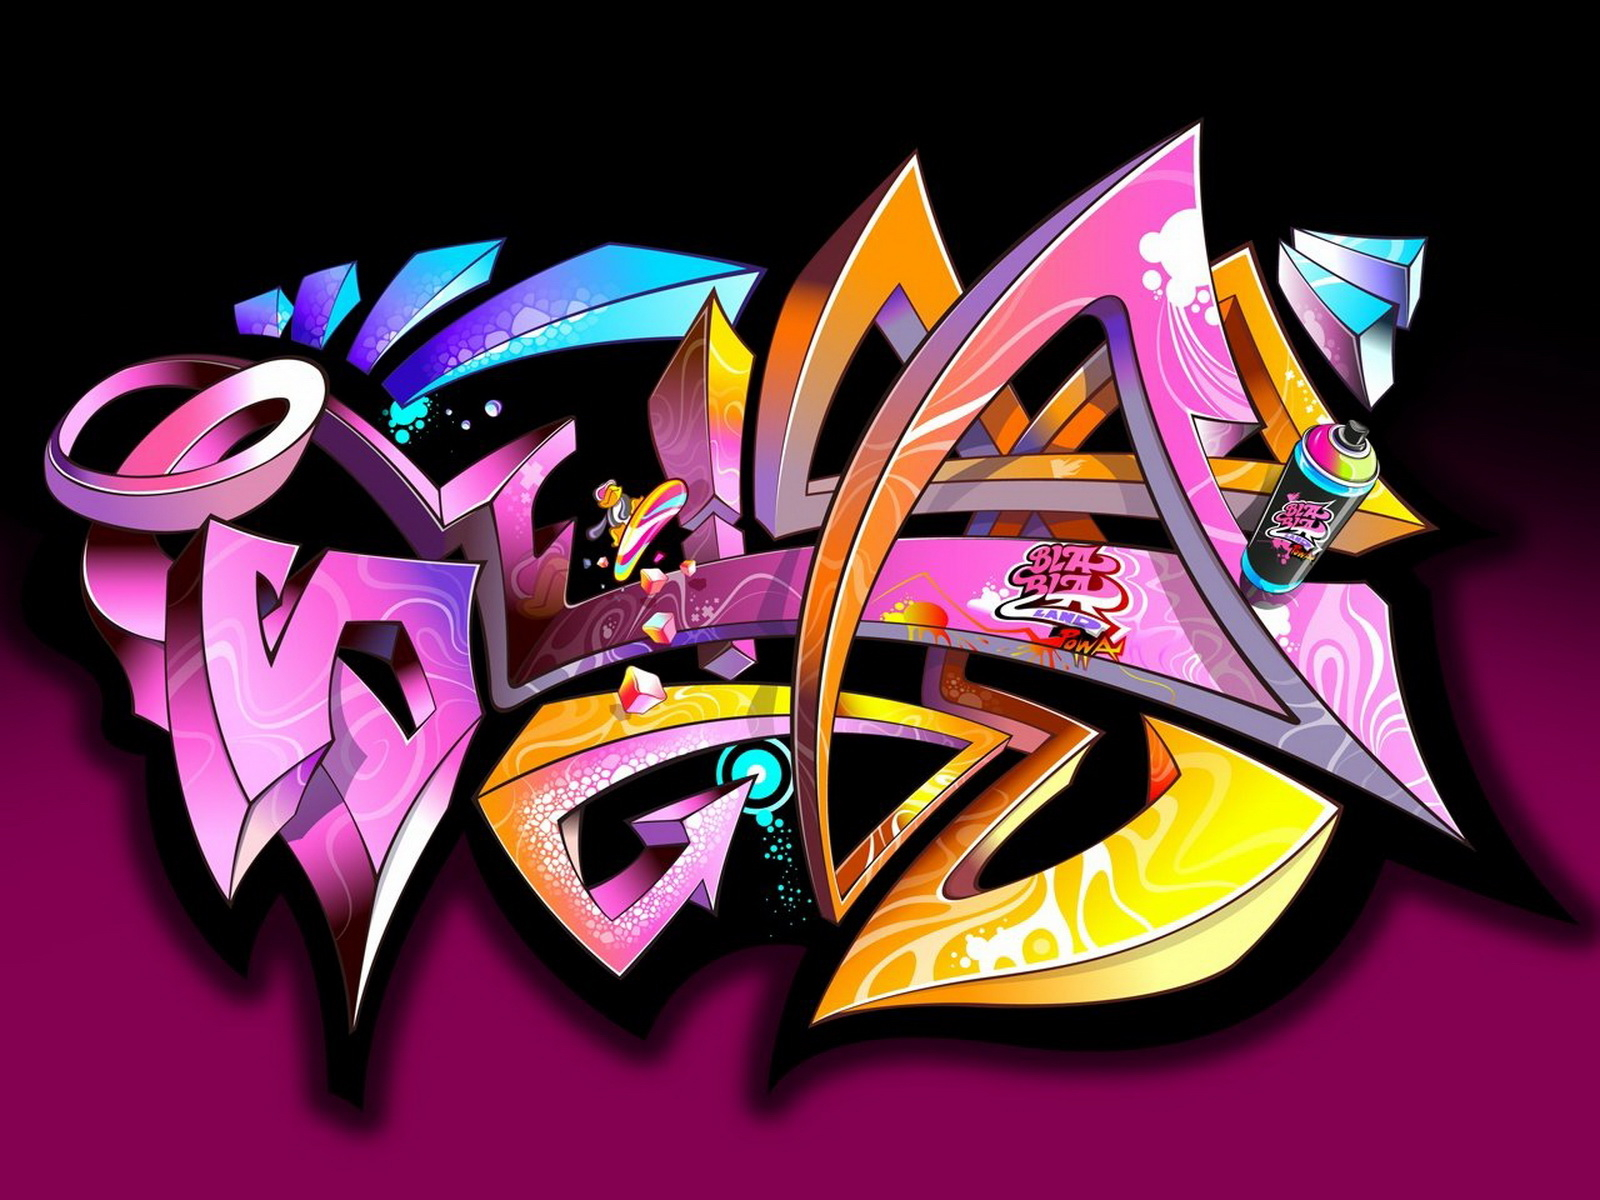 Download Free Graffiti Wallpaper Images For Laptop Desktops